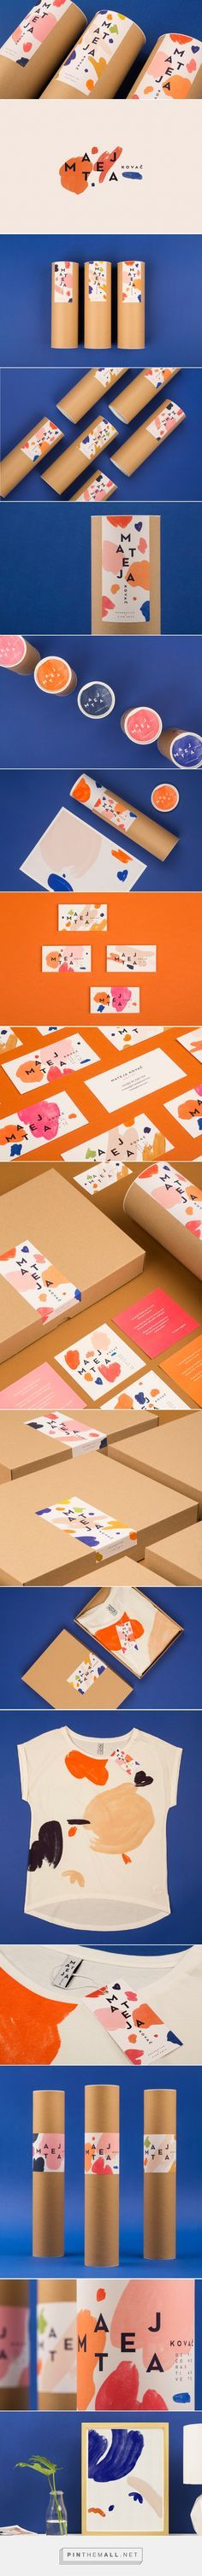 MATEJA KOVAČ / Visual identity on Behance Love the colors and bold pattern use in the brand identity